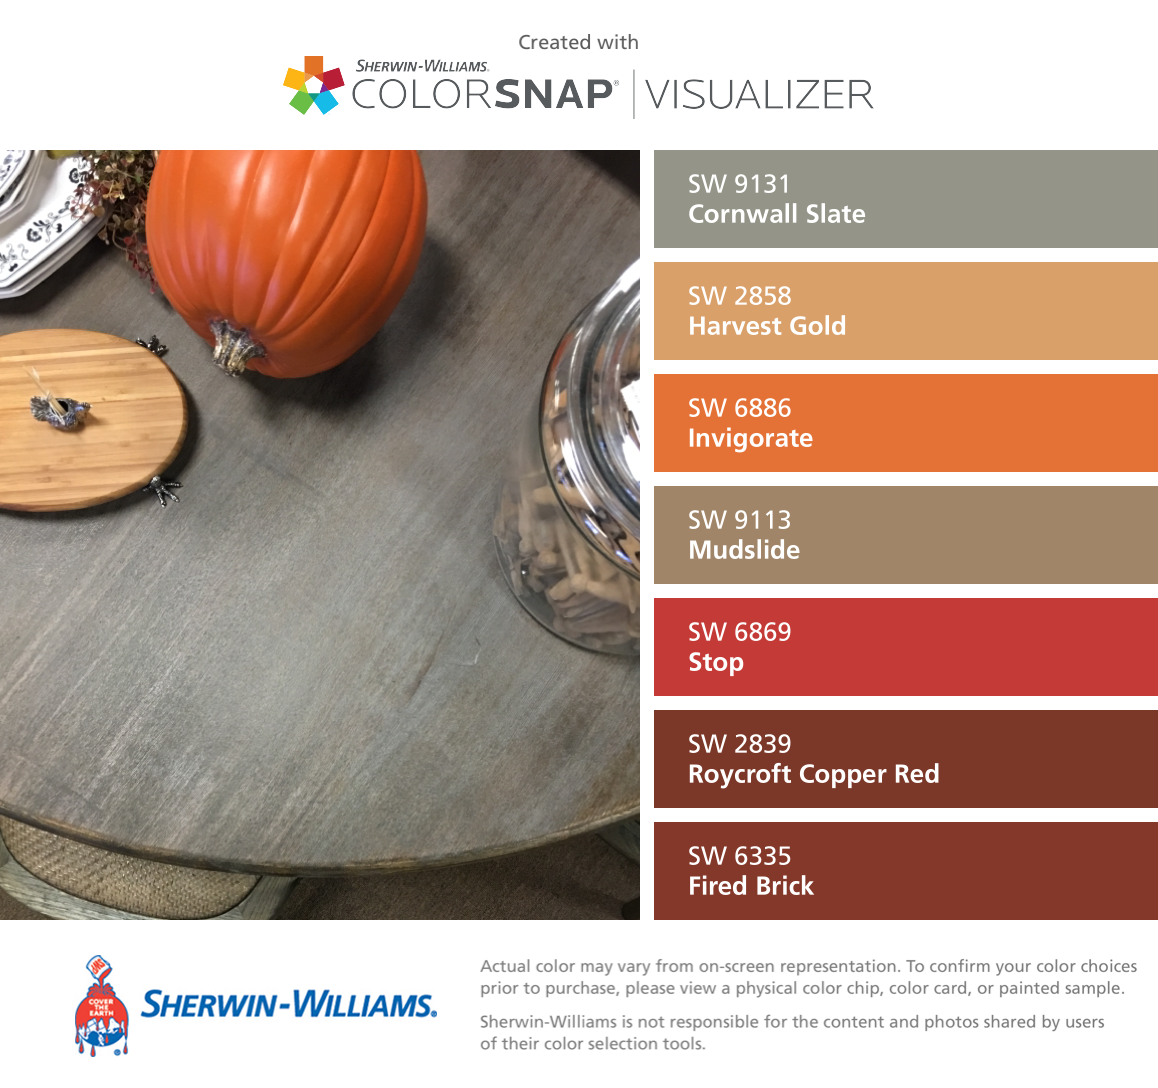 I Found These Colors With Colorsnap Visualizer For Iphone By Sherwin Williams Cornwall Slate Sw 9131 Harvest Gold With Images Paint Color Chart Color Sherwin Williams